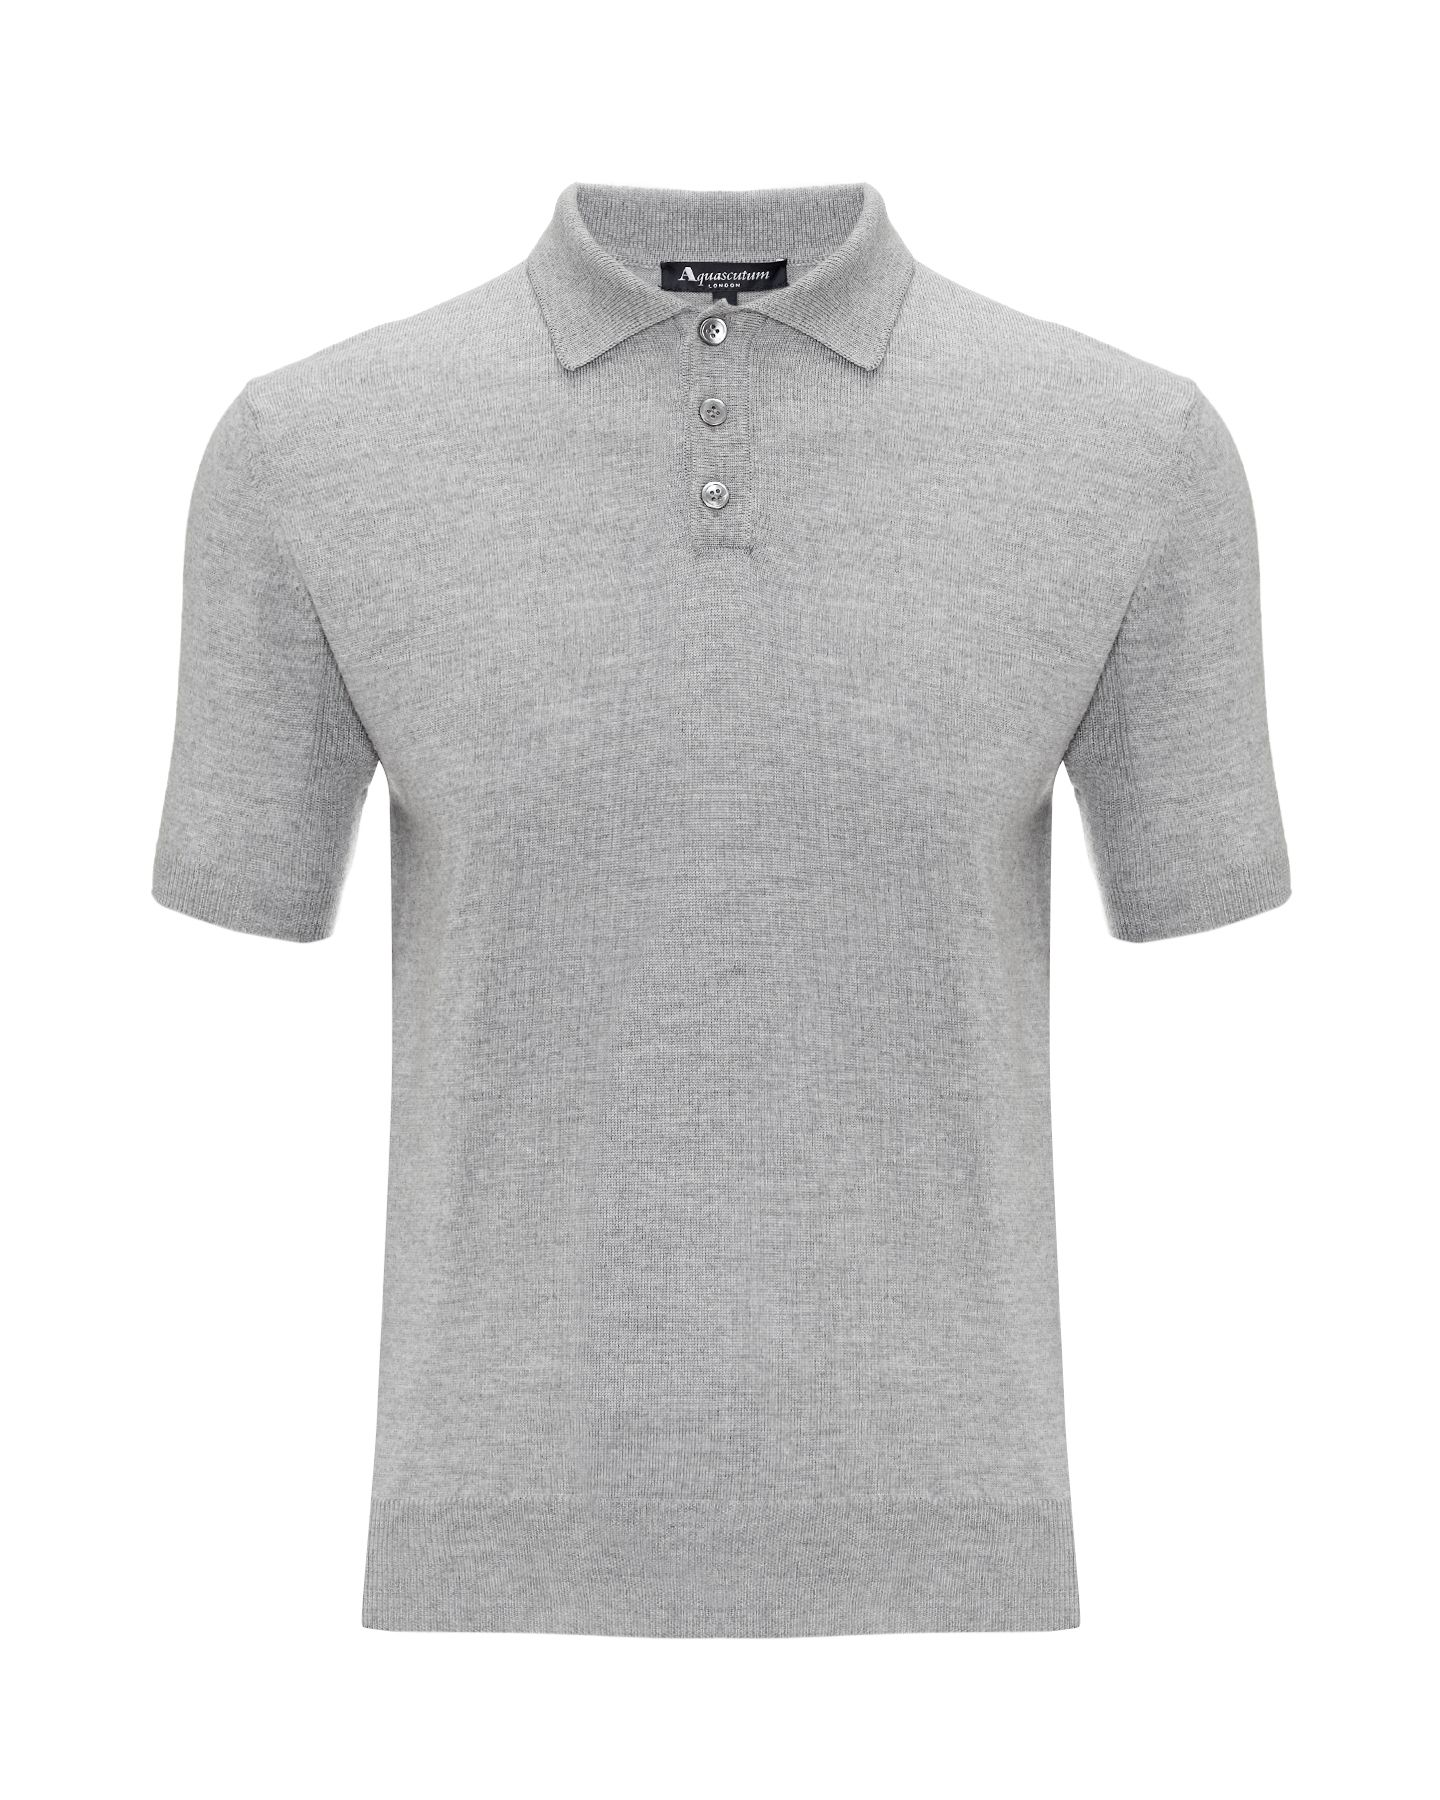 Merino short sleeved knit polo shirt